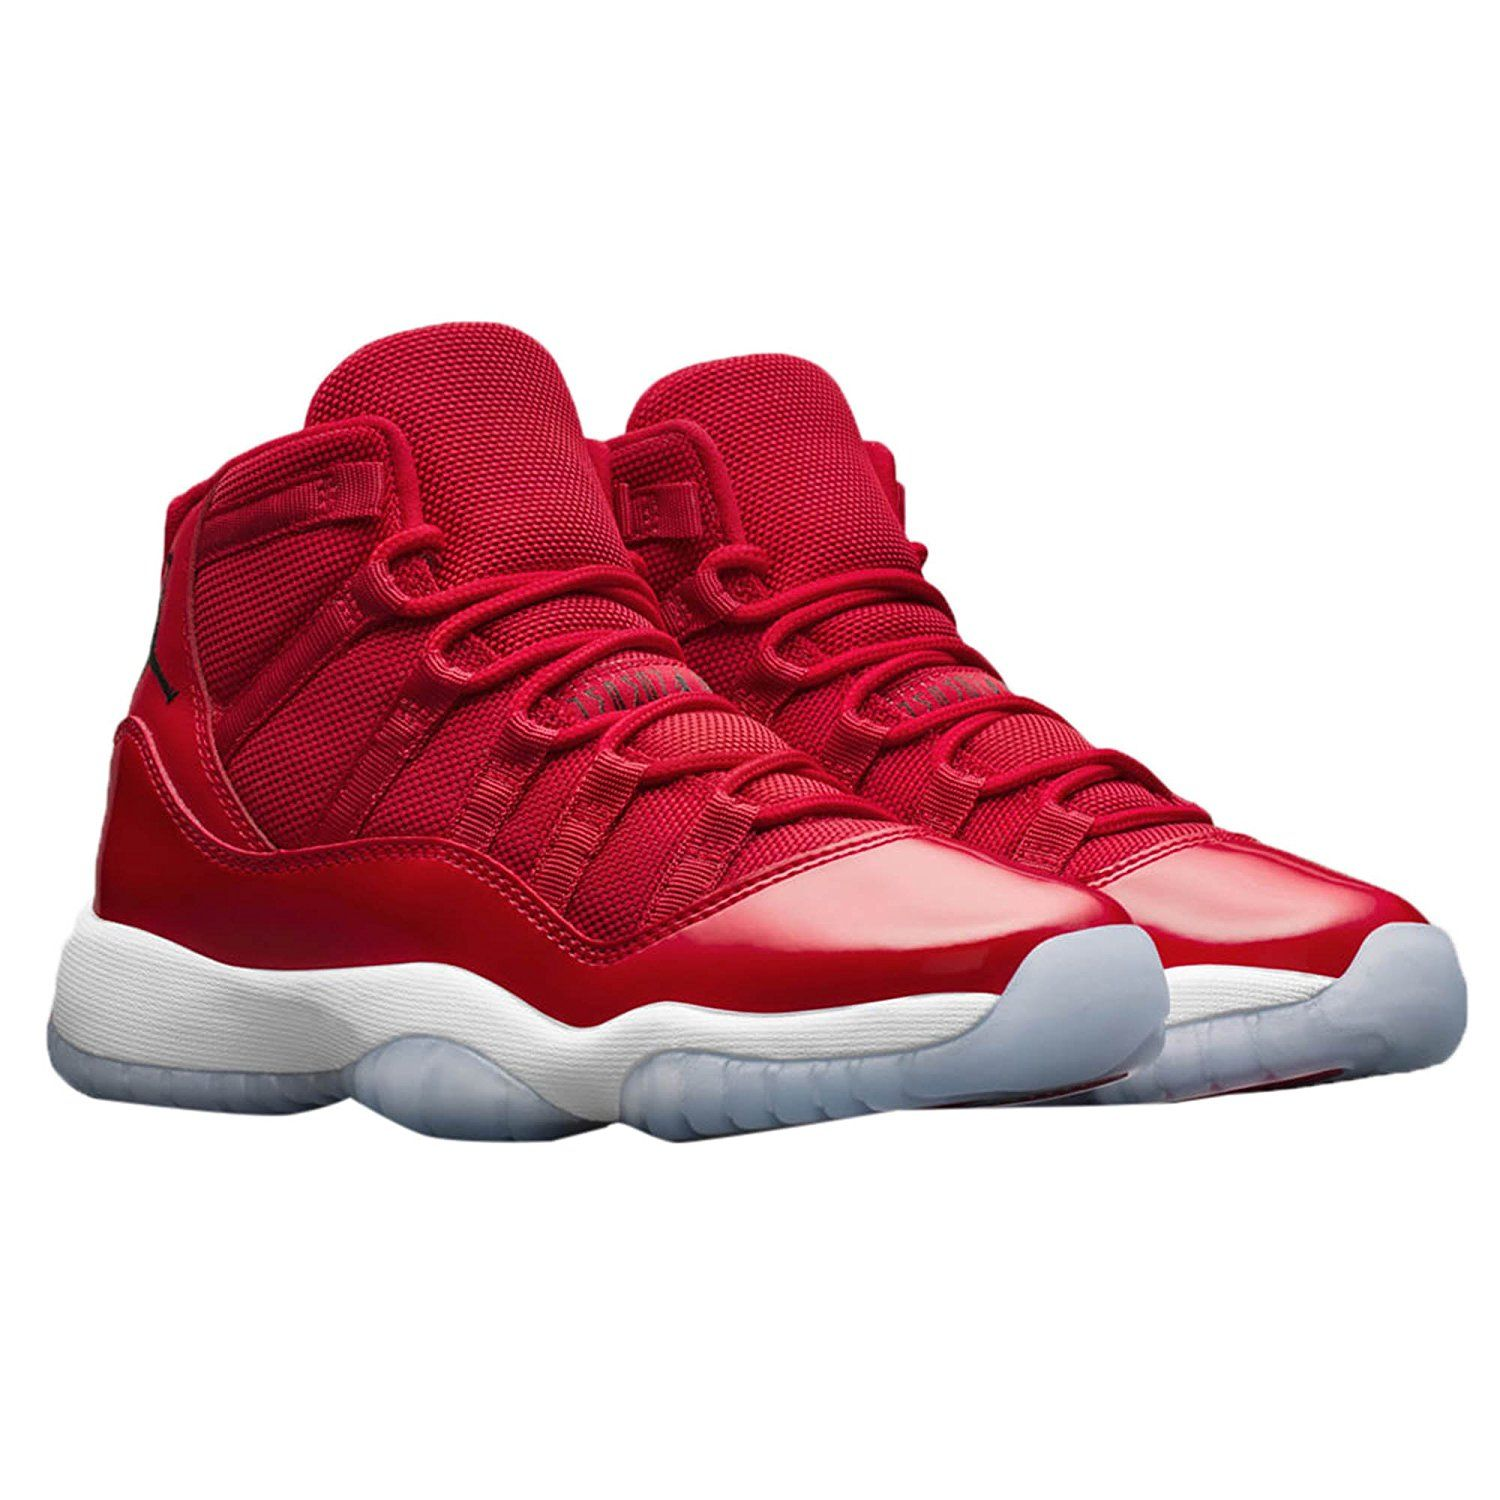 53f69f50fce4c Amazon.com | Jordan Men's Air 11 Retro, Gym Red/Black-White, 8 M US ...